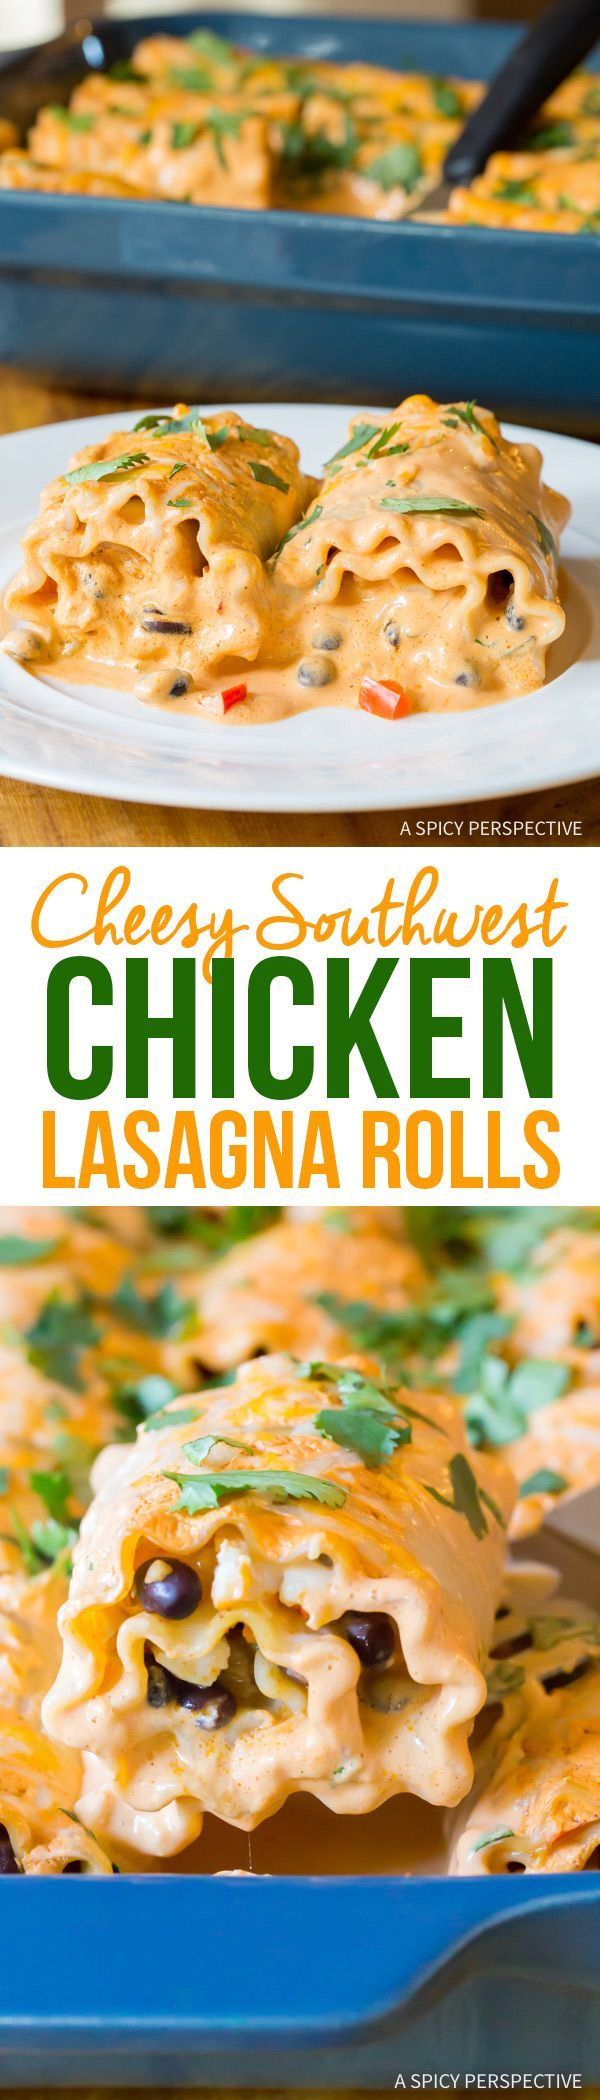 Cheesy Southwest Chicken Lasagna Rolls